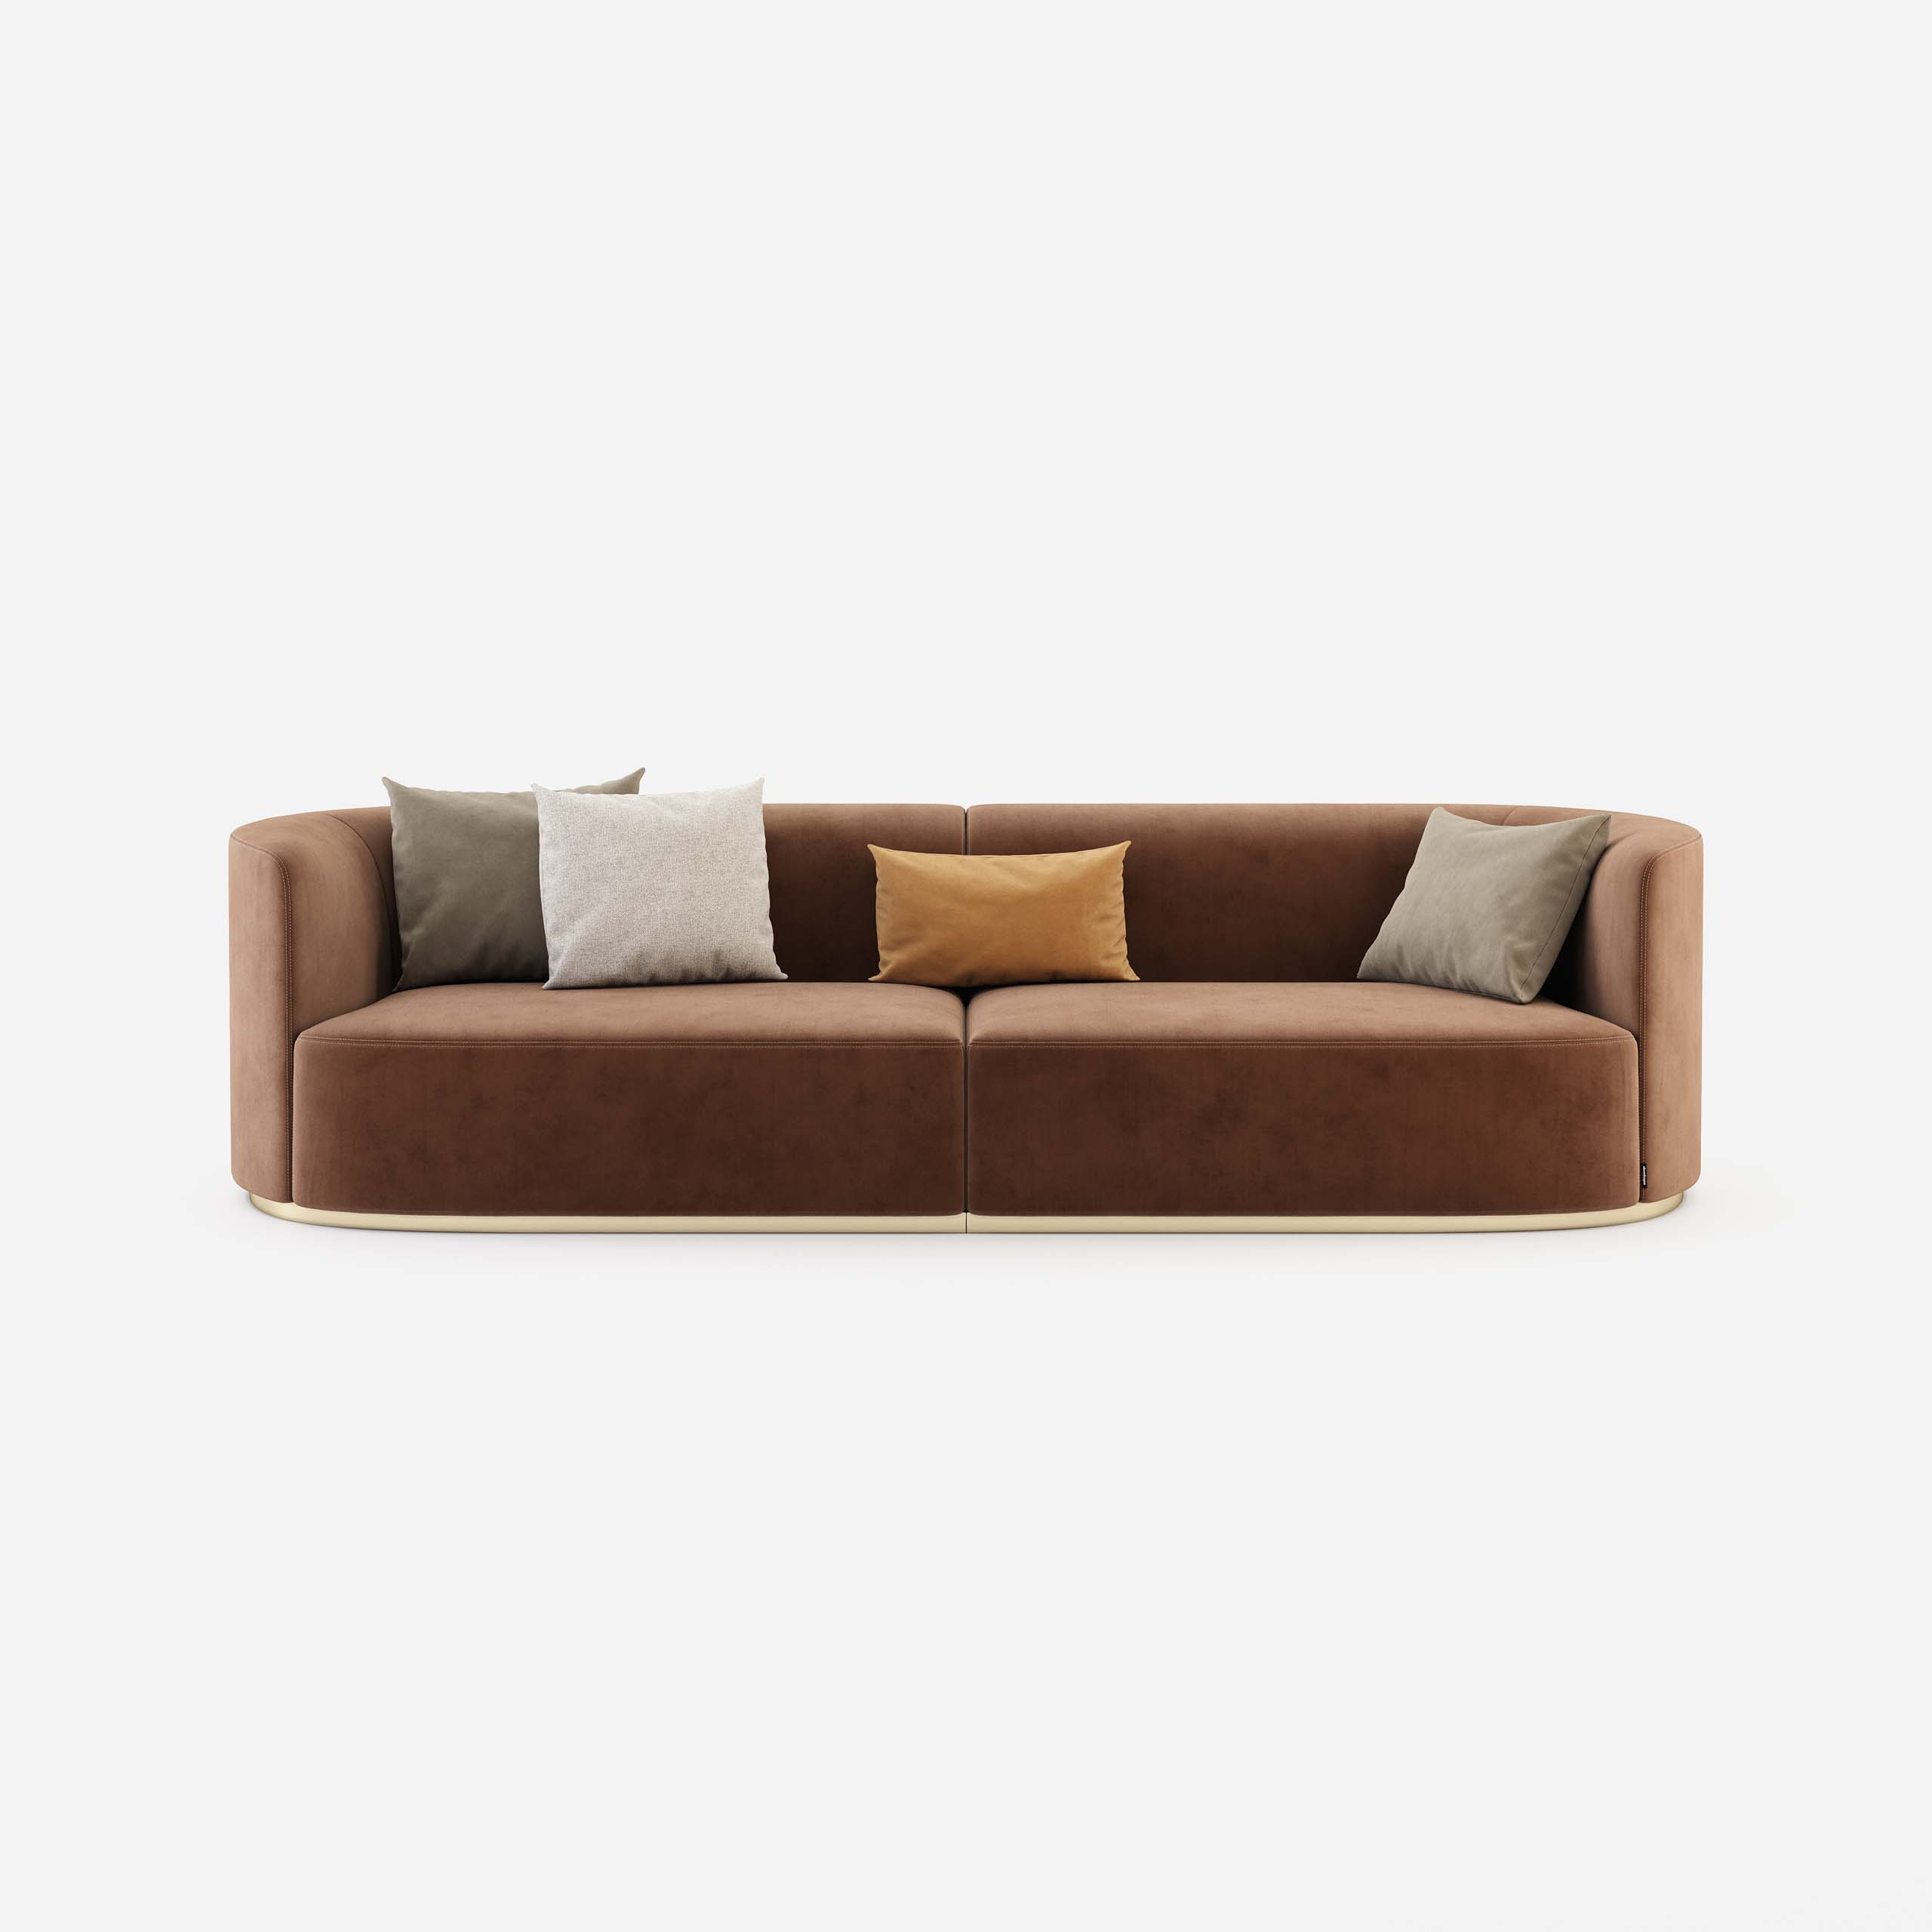 Chloe Sofa Dk 2021 Collection Living Room Decor